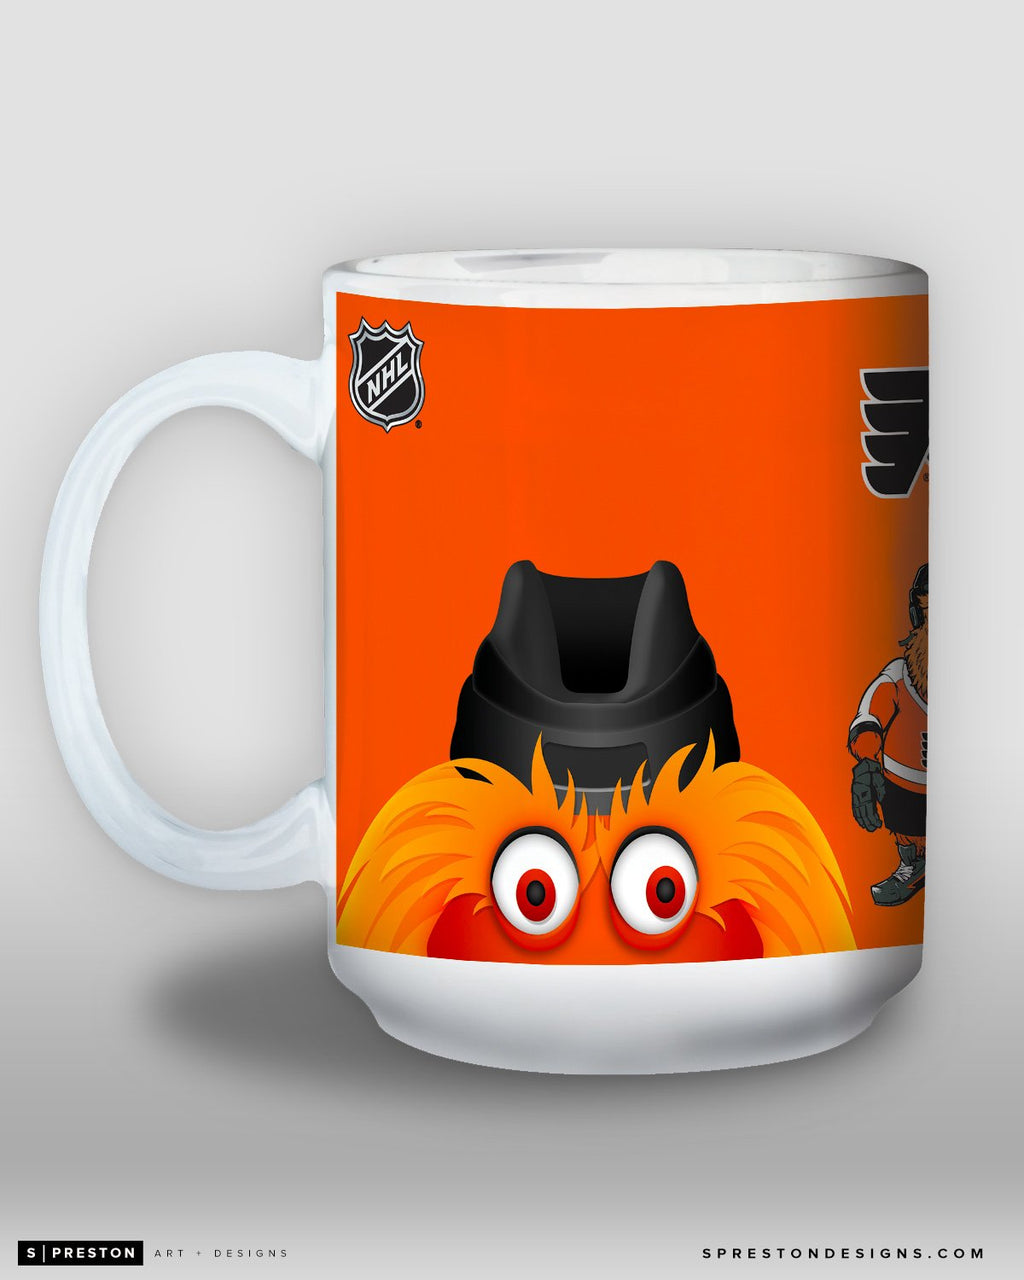 Minimalist Gritty Coffee Mug - NHL Licensed - Philadelphia Flyers Mascot